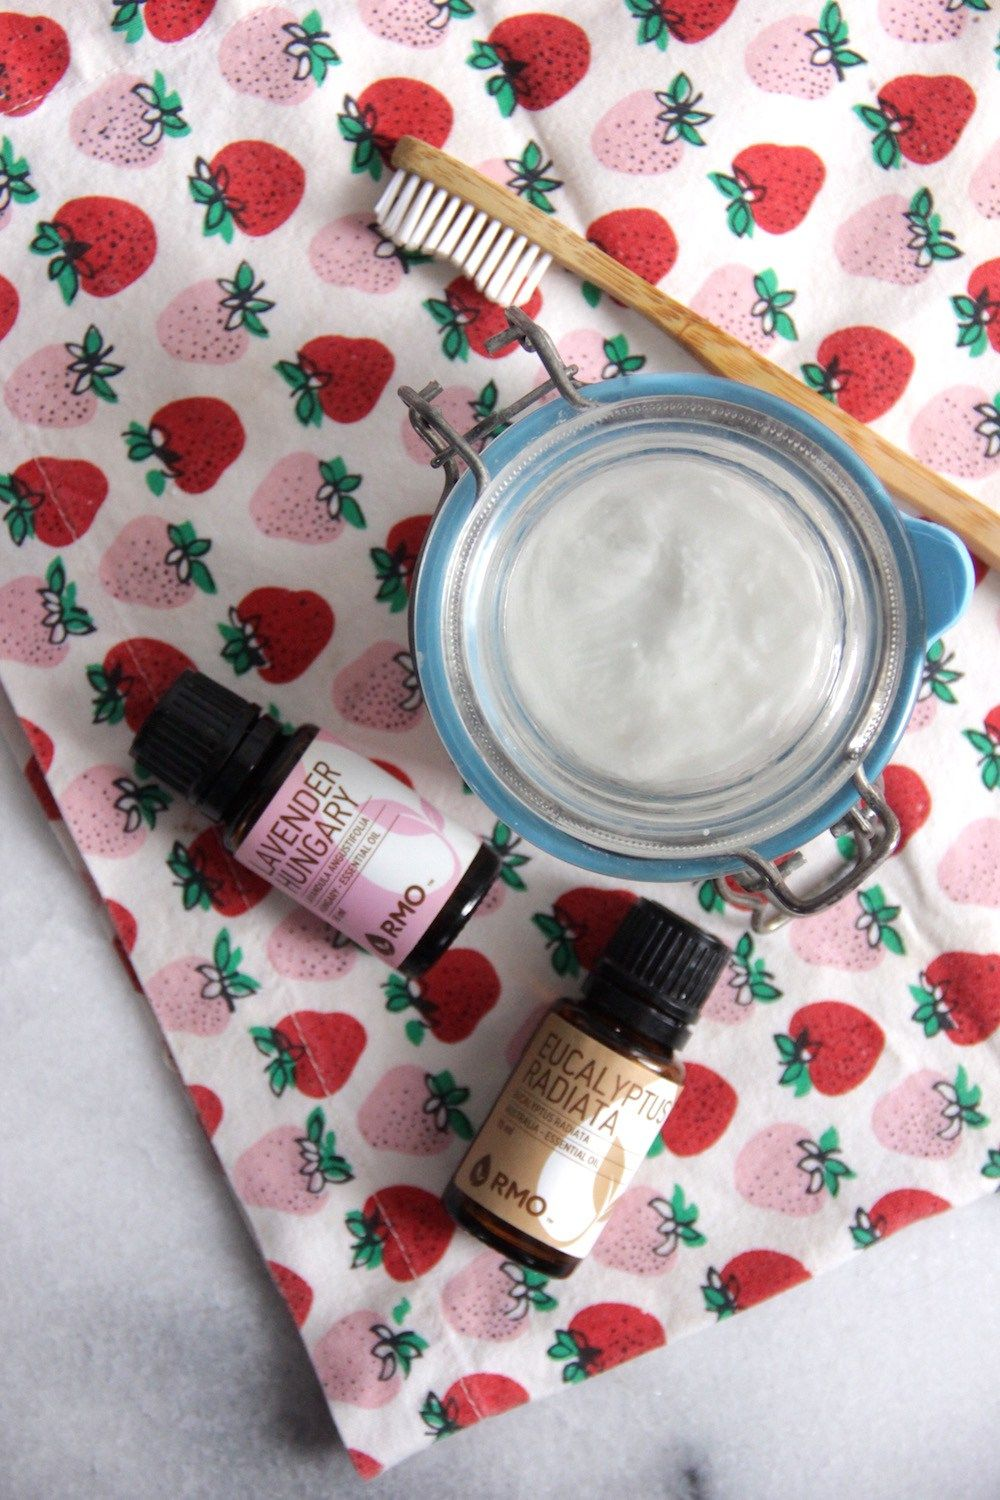 Diy natural make at home toothpaste homemade toothpaste